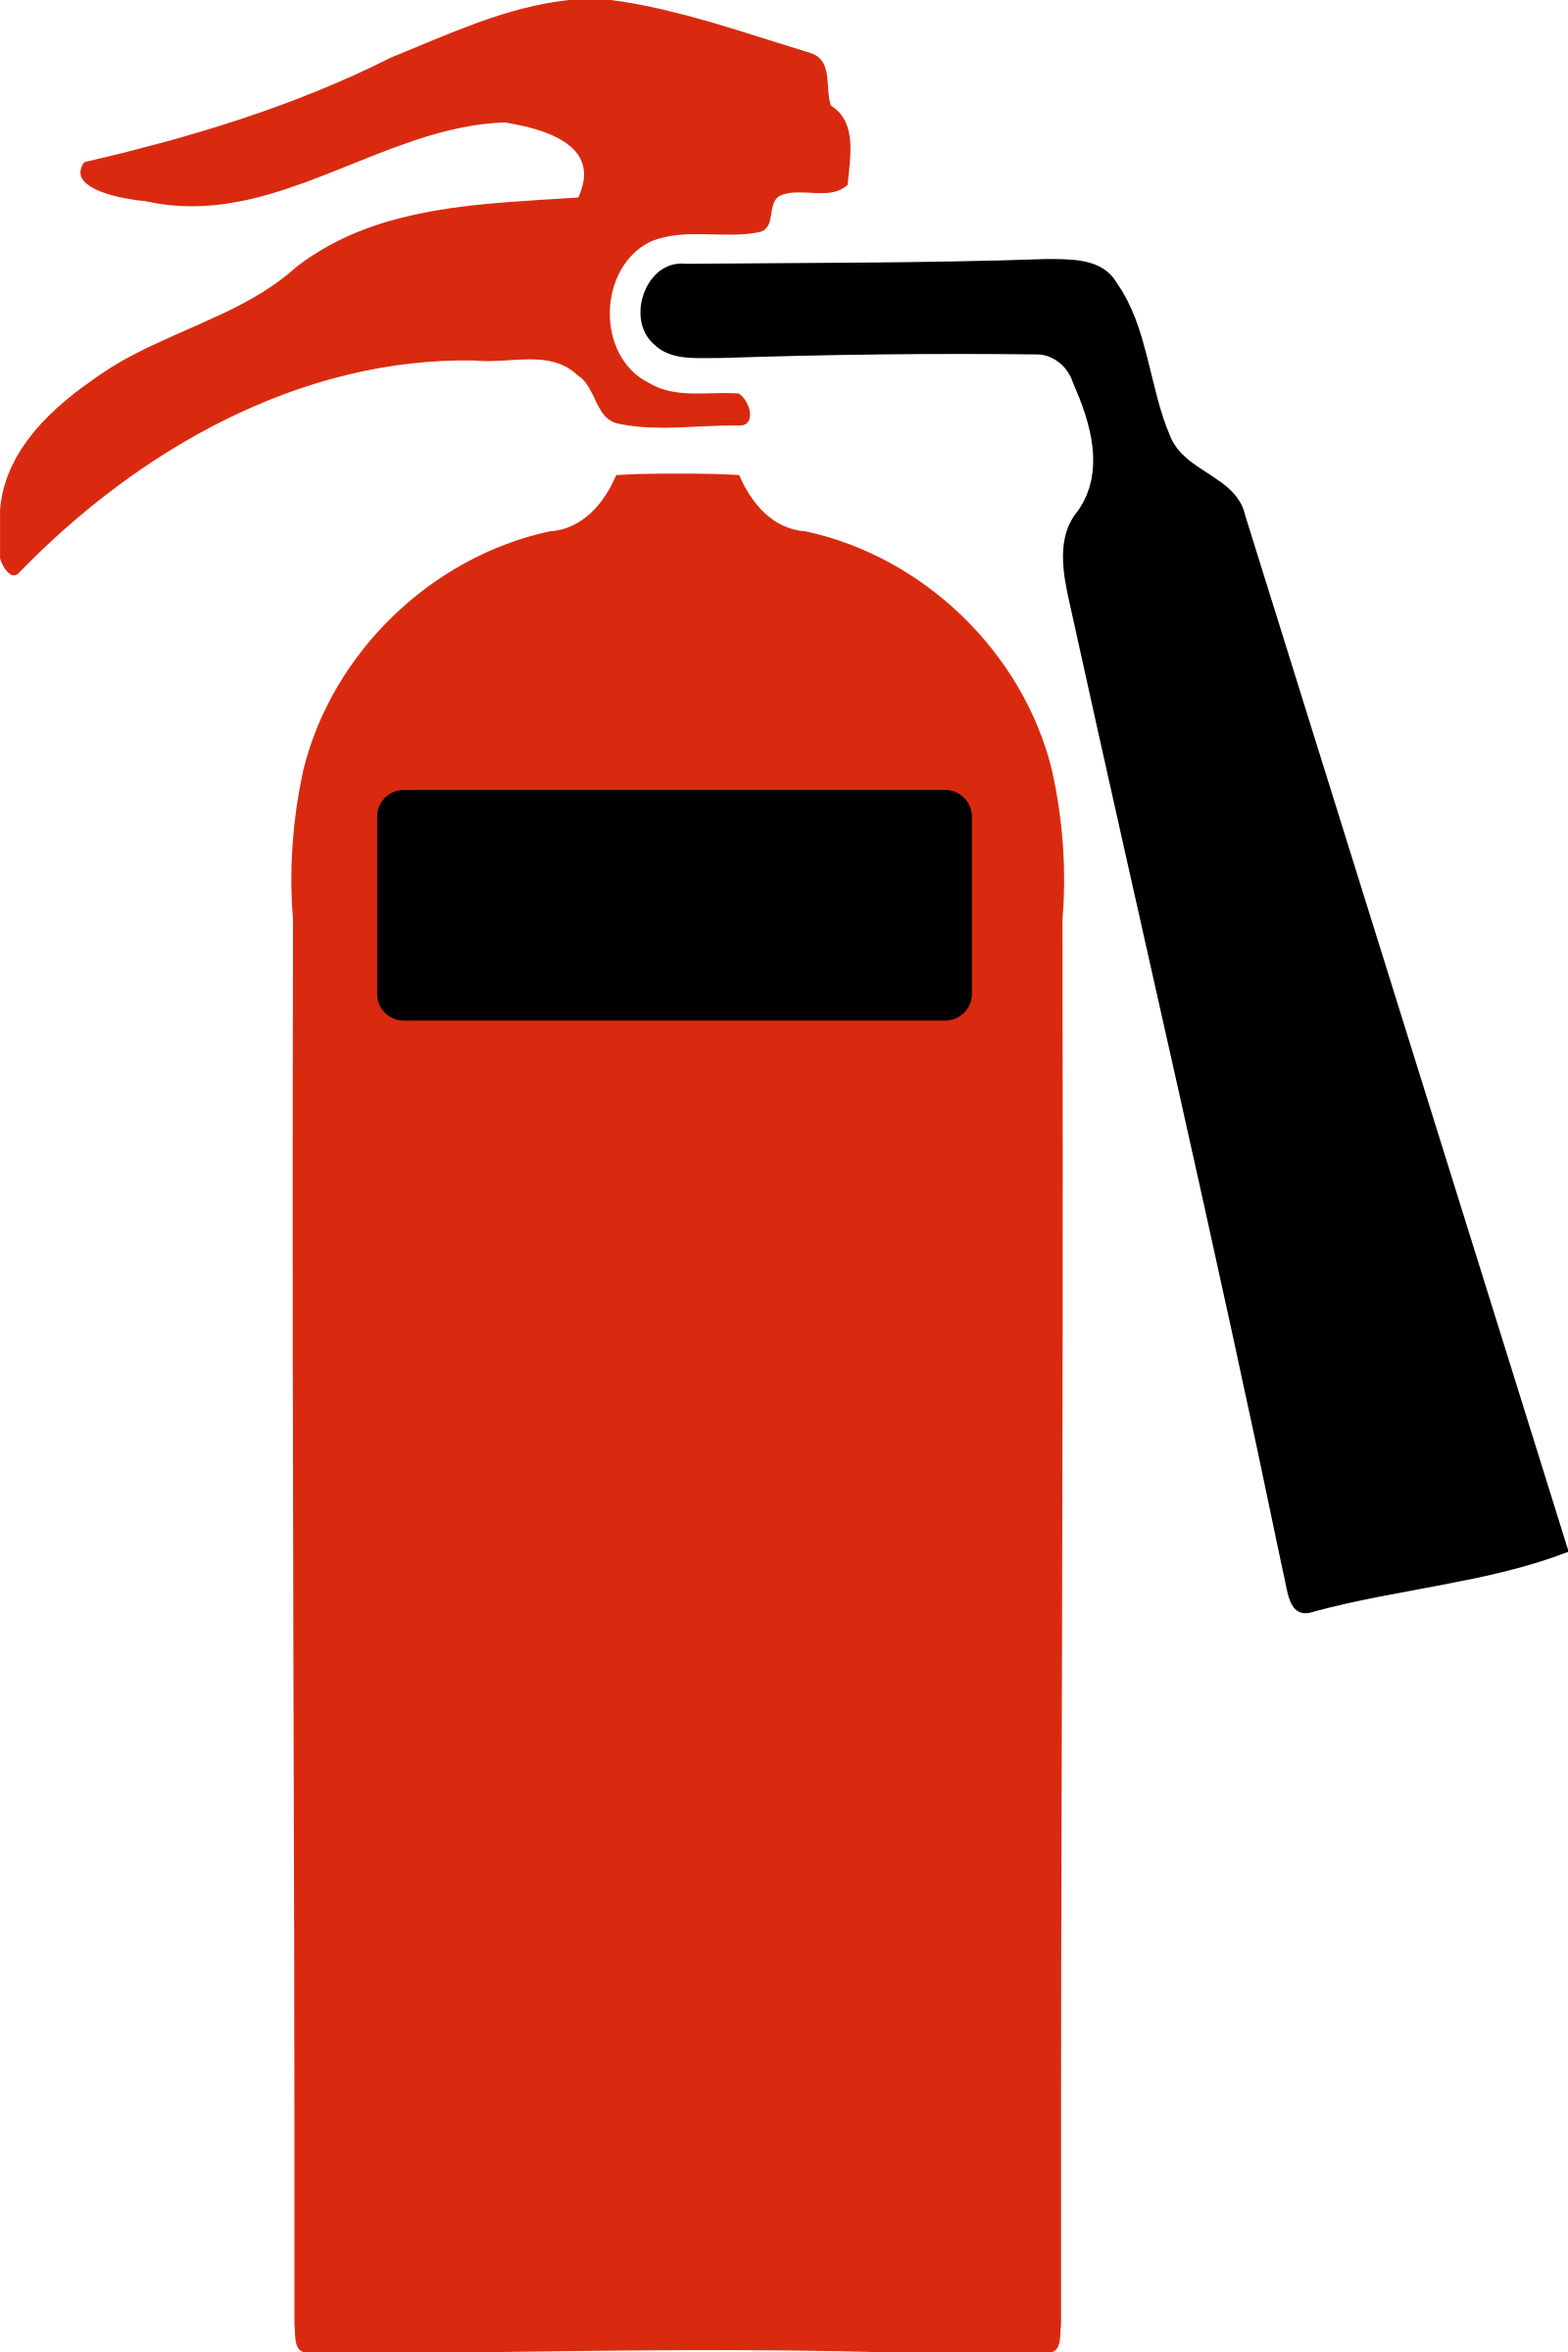 Fire Extinguisher Icon Clipart.